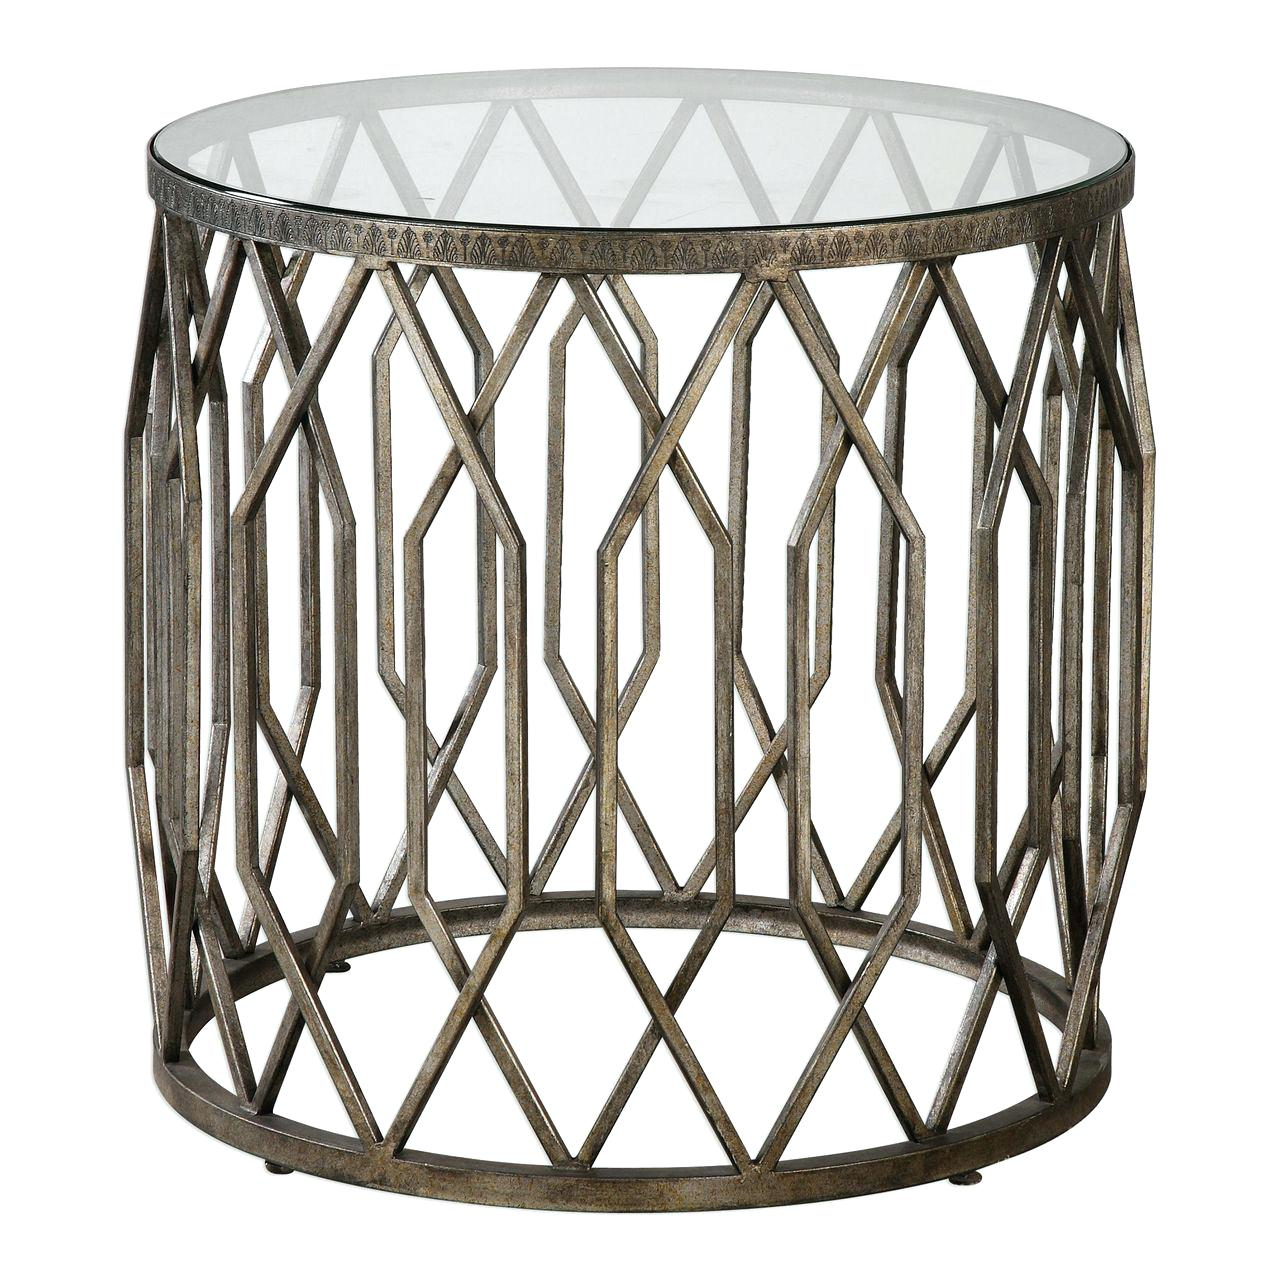 drum accent table manila cylinder brass metal side silver pottery barn storage accessories for house decoration circular stacking tables wooden patio with umbrella hole oriental